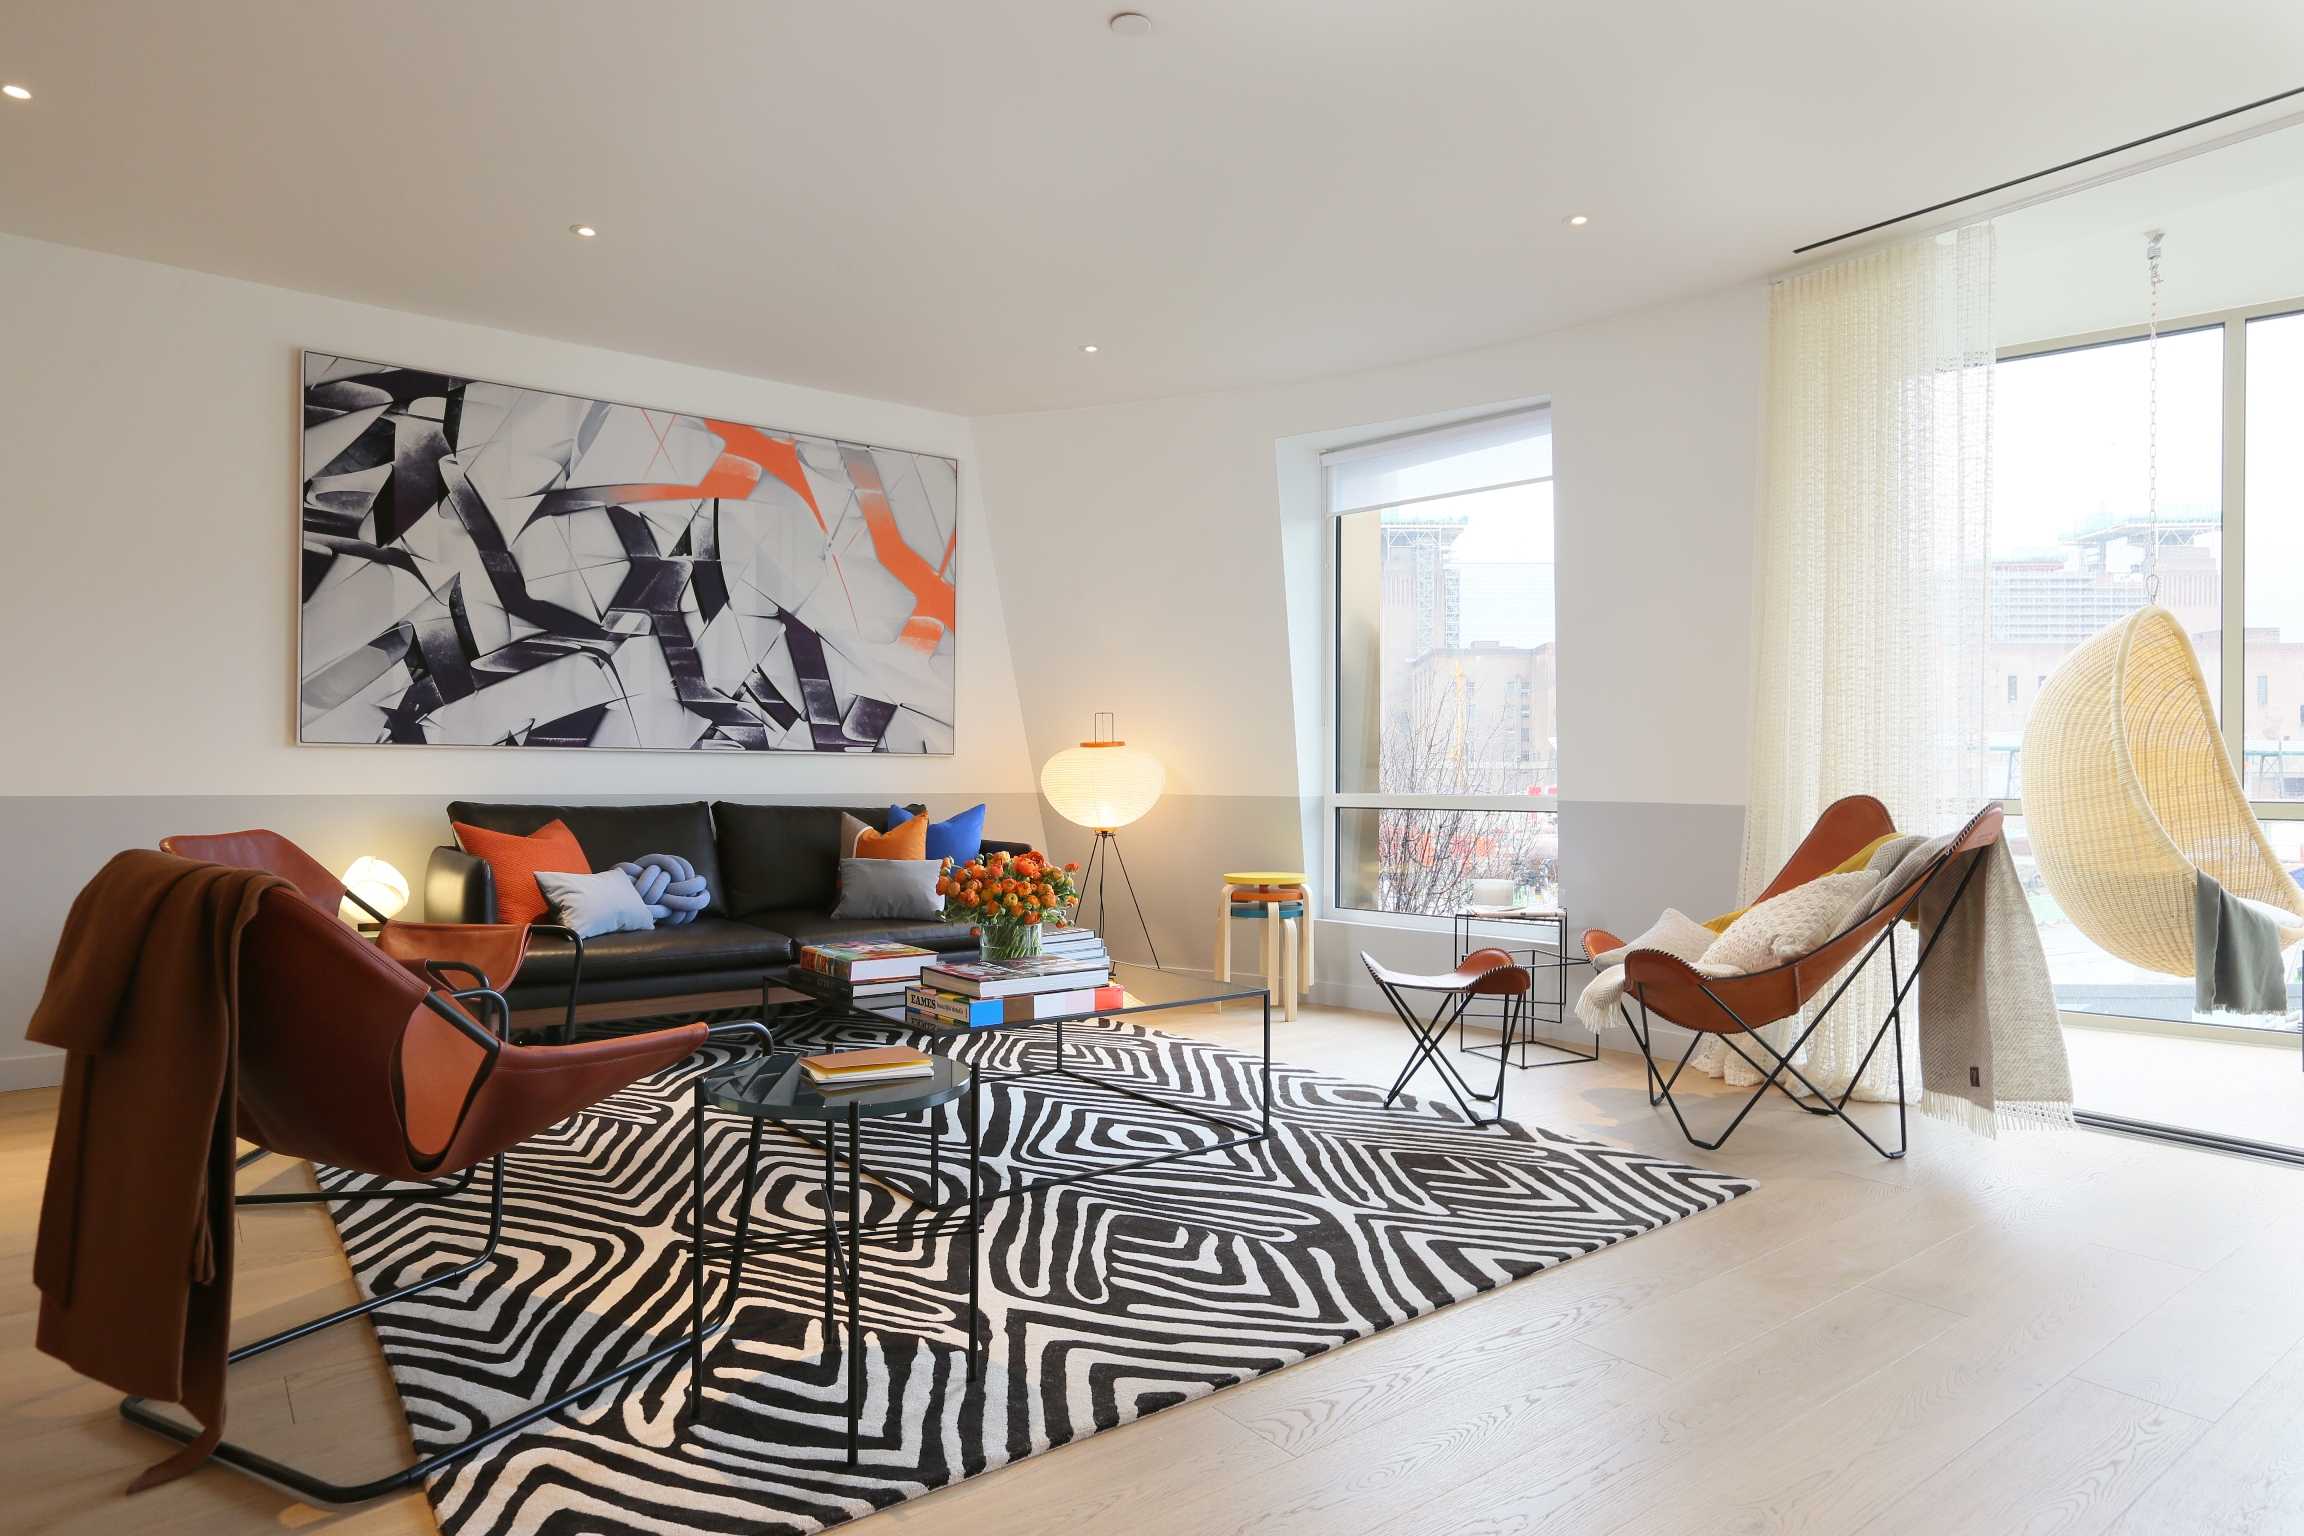 Gehry show apartment living room at Battersea Power Station